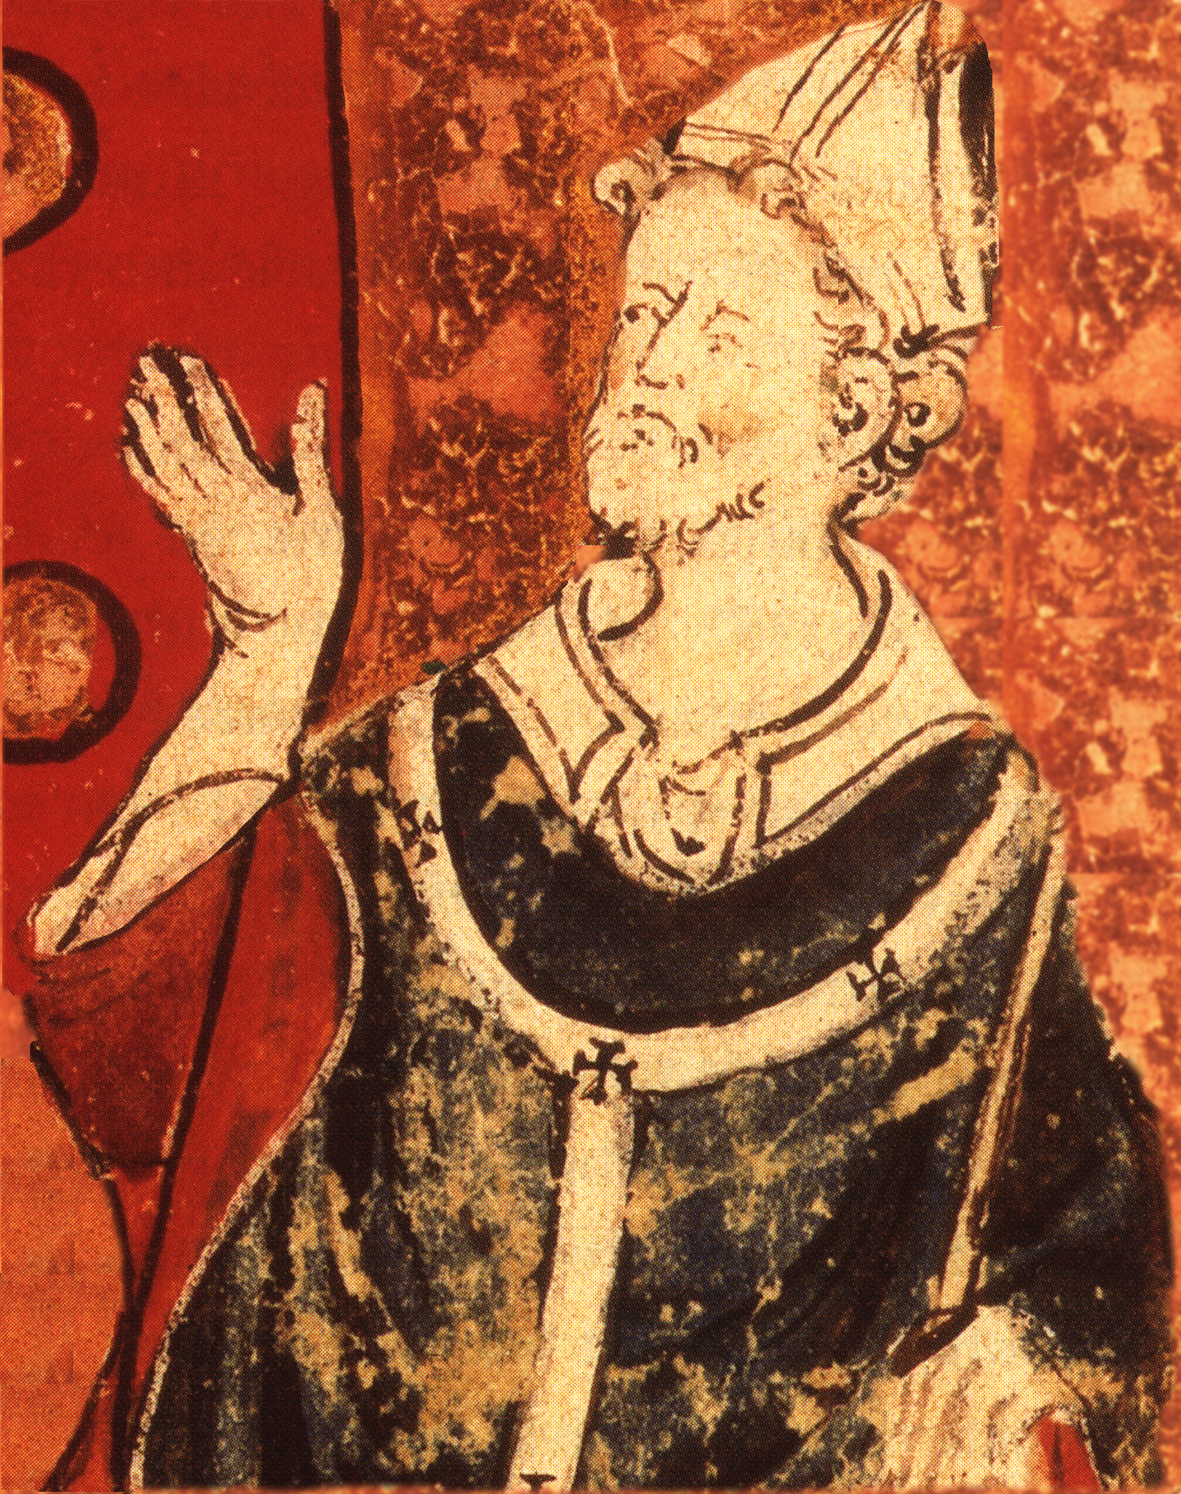 the friendship between king henry and thomas becket Thomas becket was born in around 1120, the son of a prosperous london  merchant  becket's talents were noticed by henry ii, who made him his  chancellor and the  the king and his archbishop's friendship was put under  strain when it.